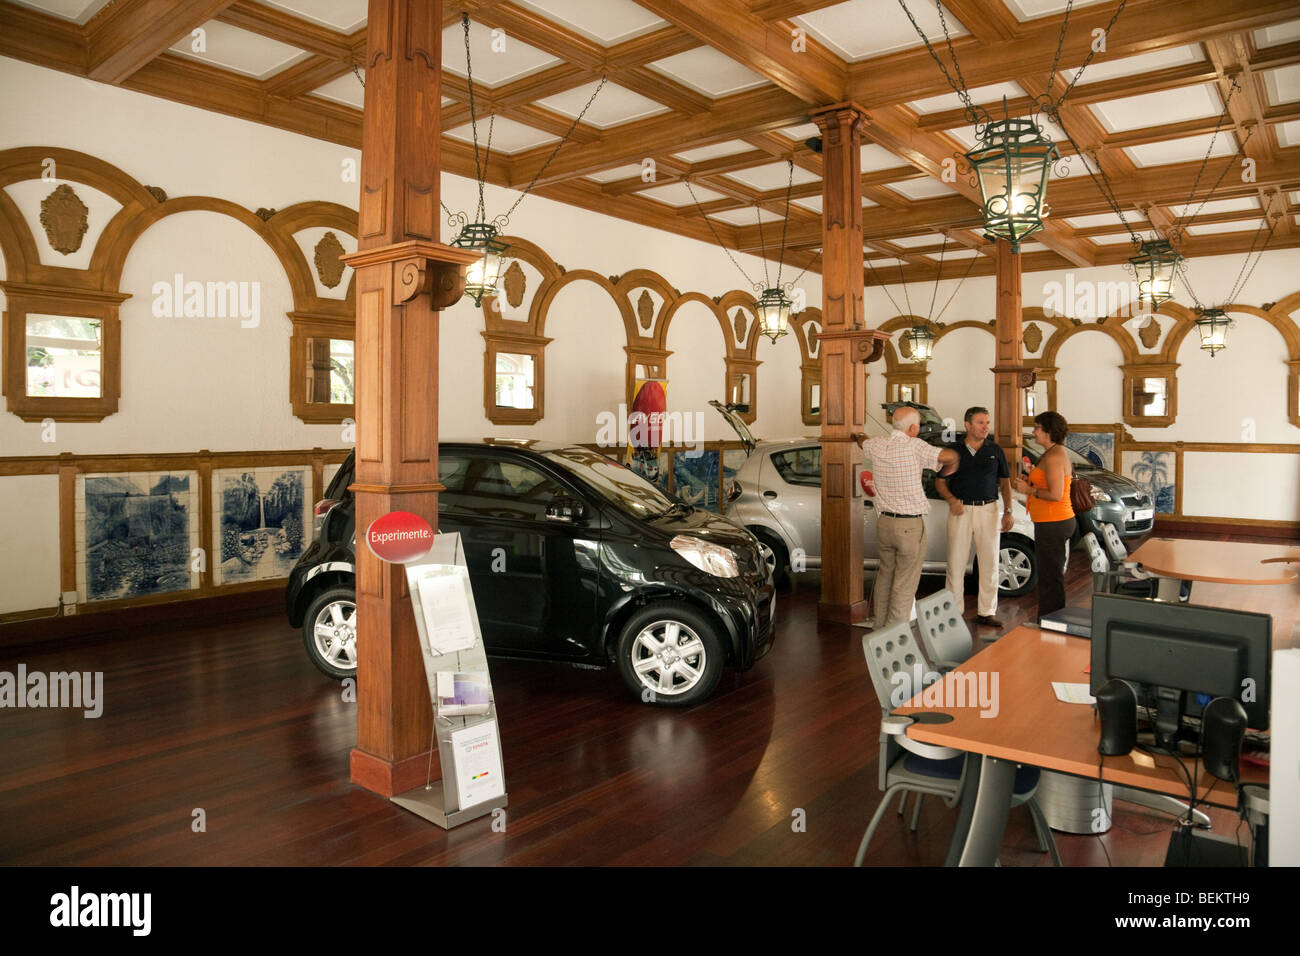 The Toyota car showroom in Funchal, Madeira,  which is in the former trade halls of the Chamber of Commerce - Stock Image